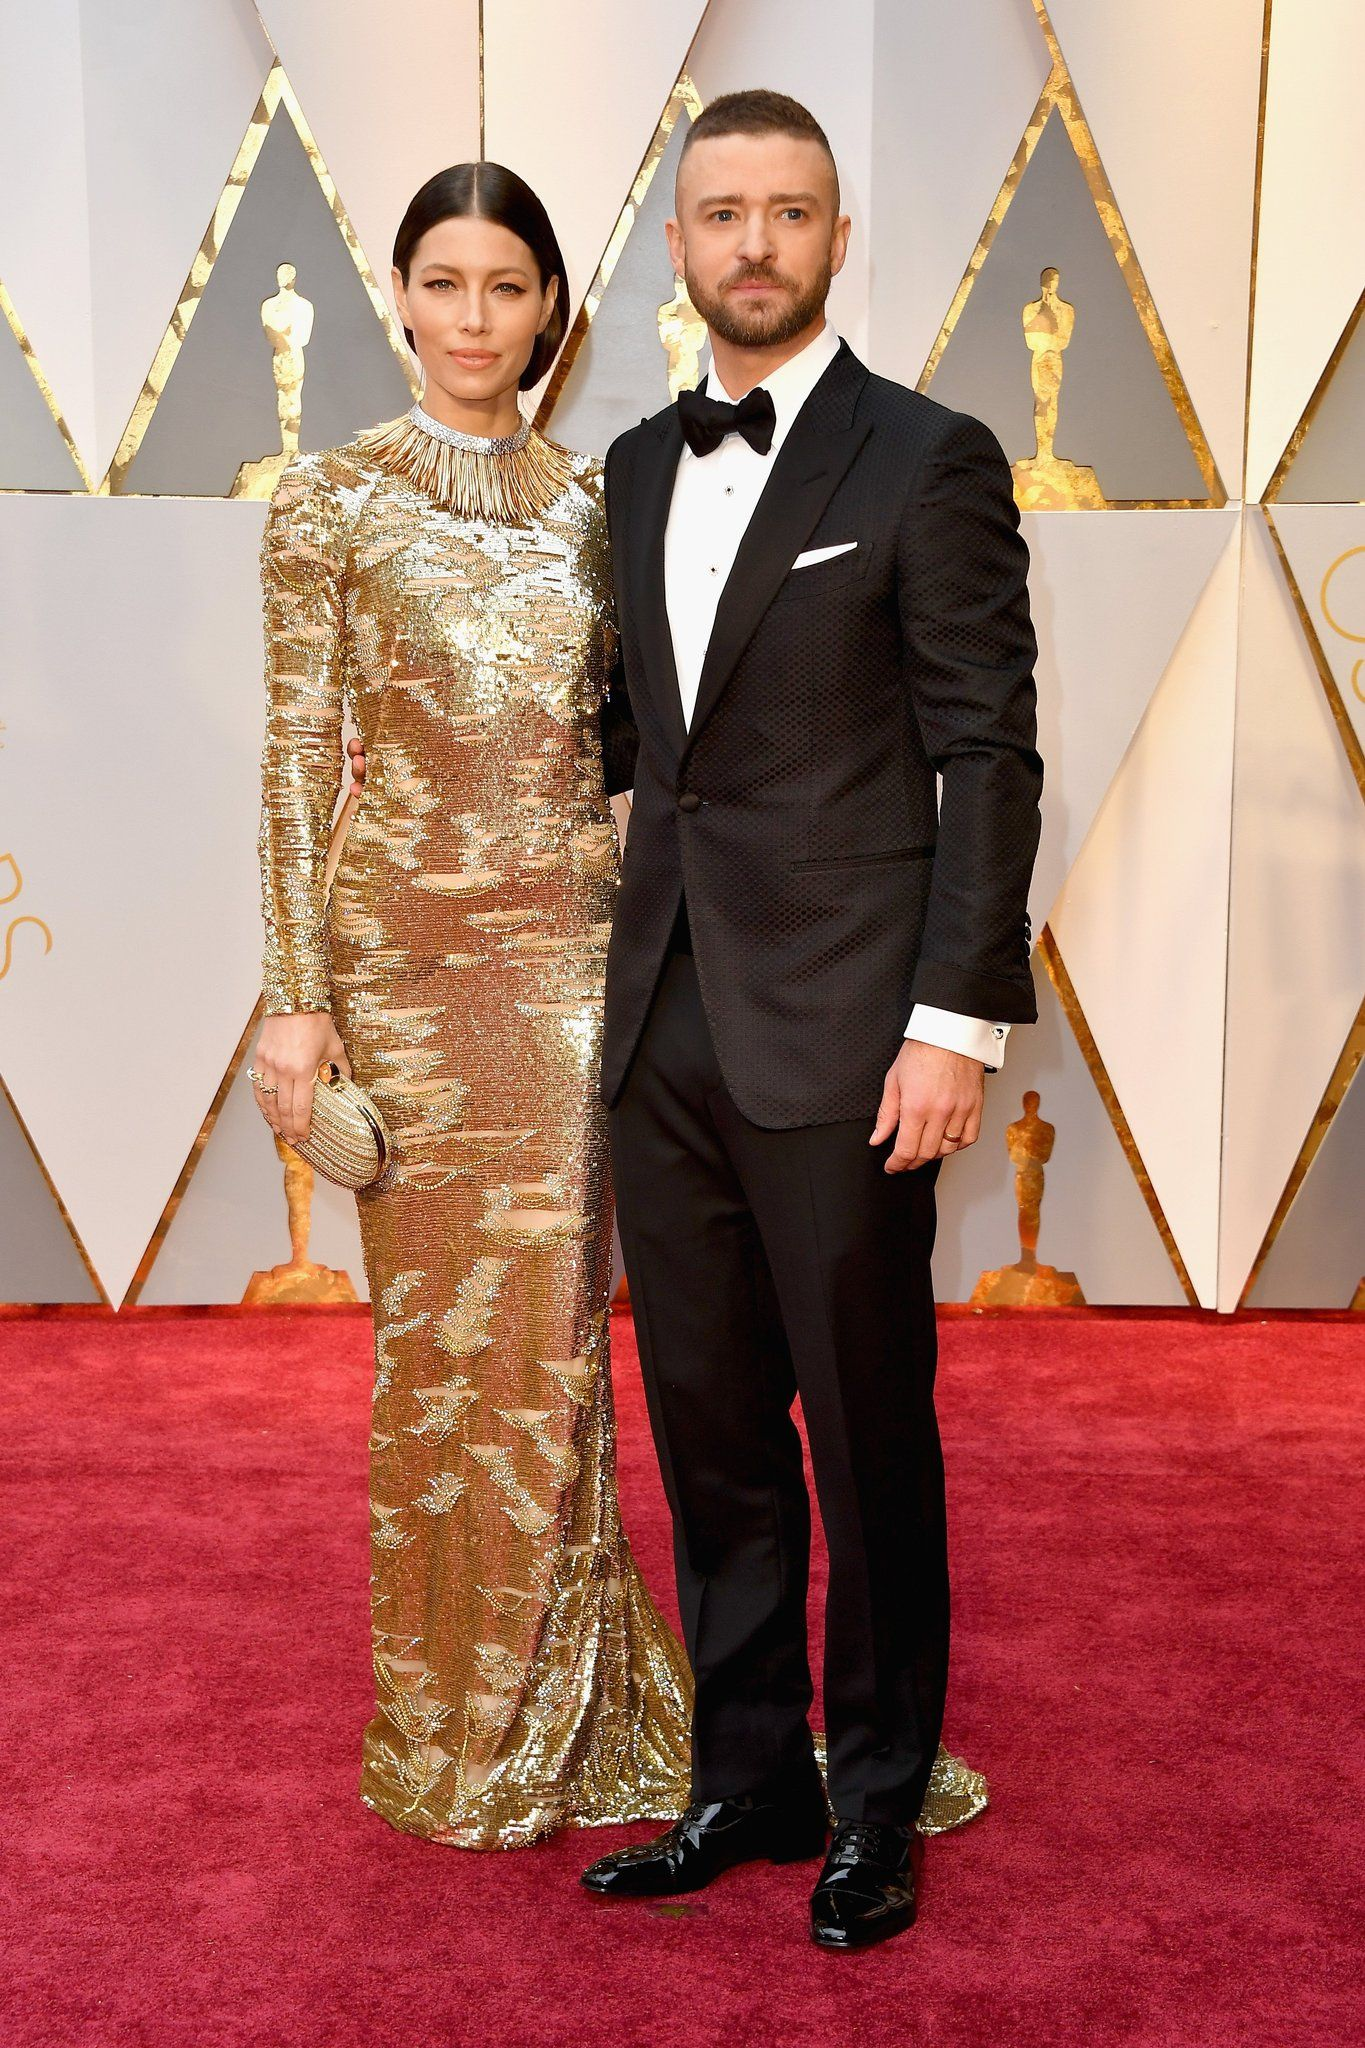 Justin Timberlake And Jessica Biel Oscar 2017 Red Carpet Arrival Oscars Red Carpet Arrivals 2017 Oscars 2017 Photos 89th Academy Awards Red Carpet Oscars Oscars 2017 Red Carpet Red Carpet Fashion